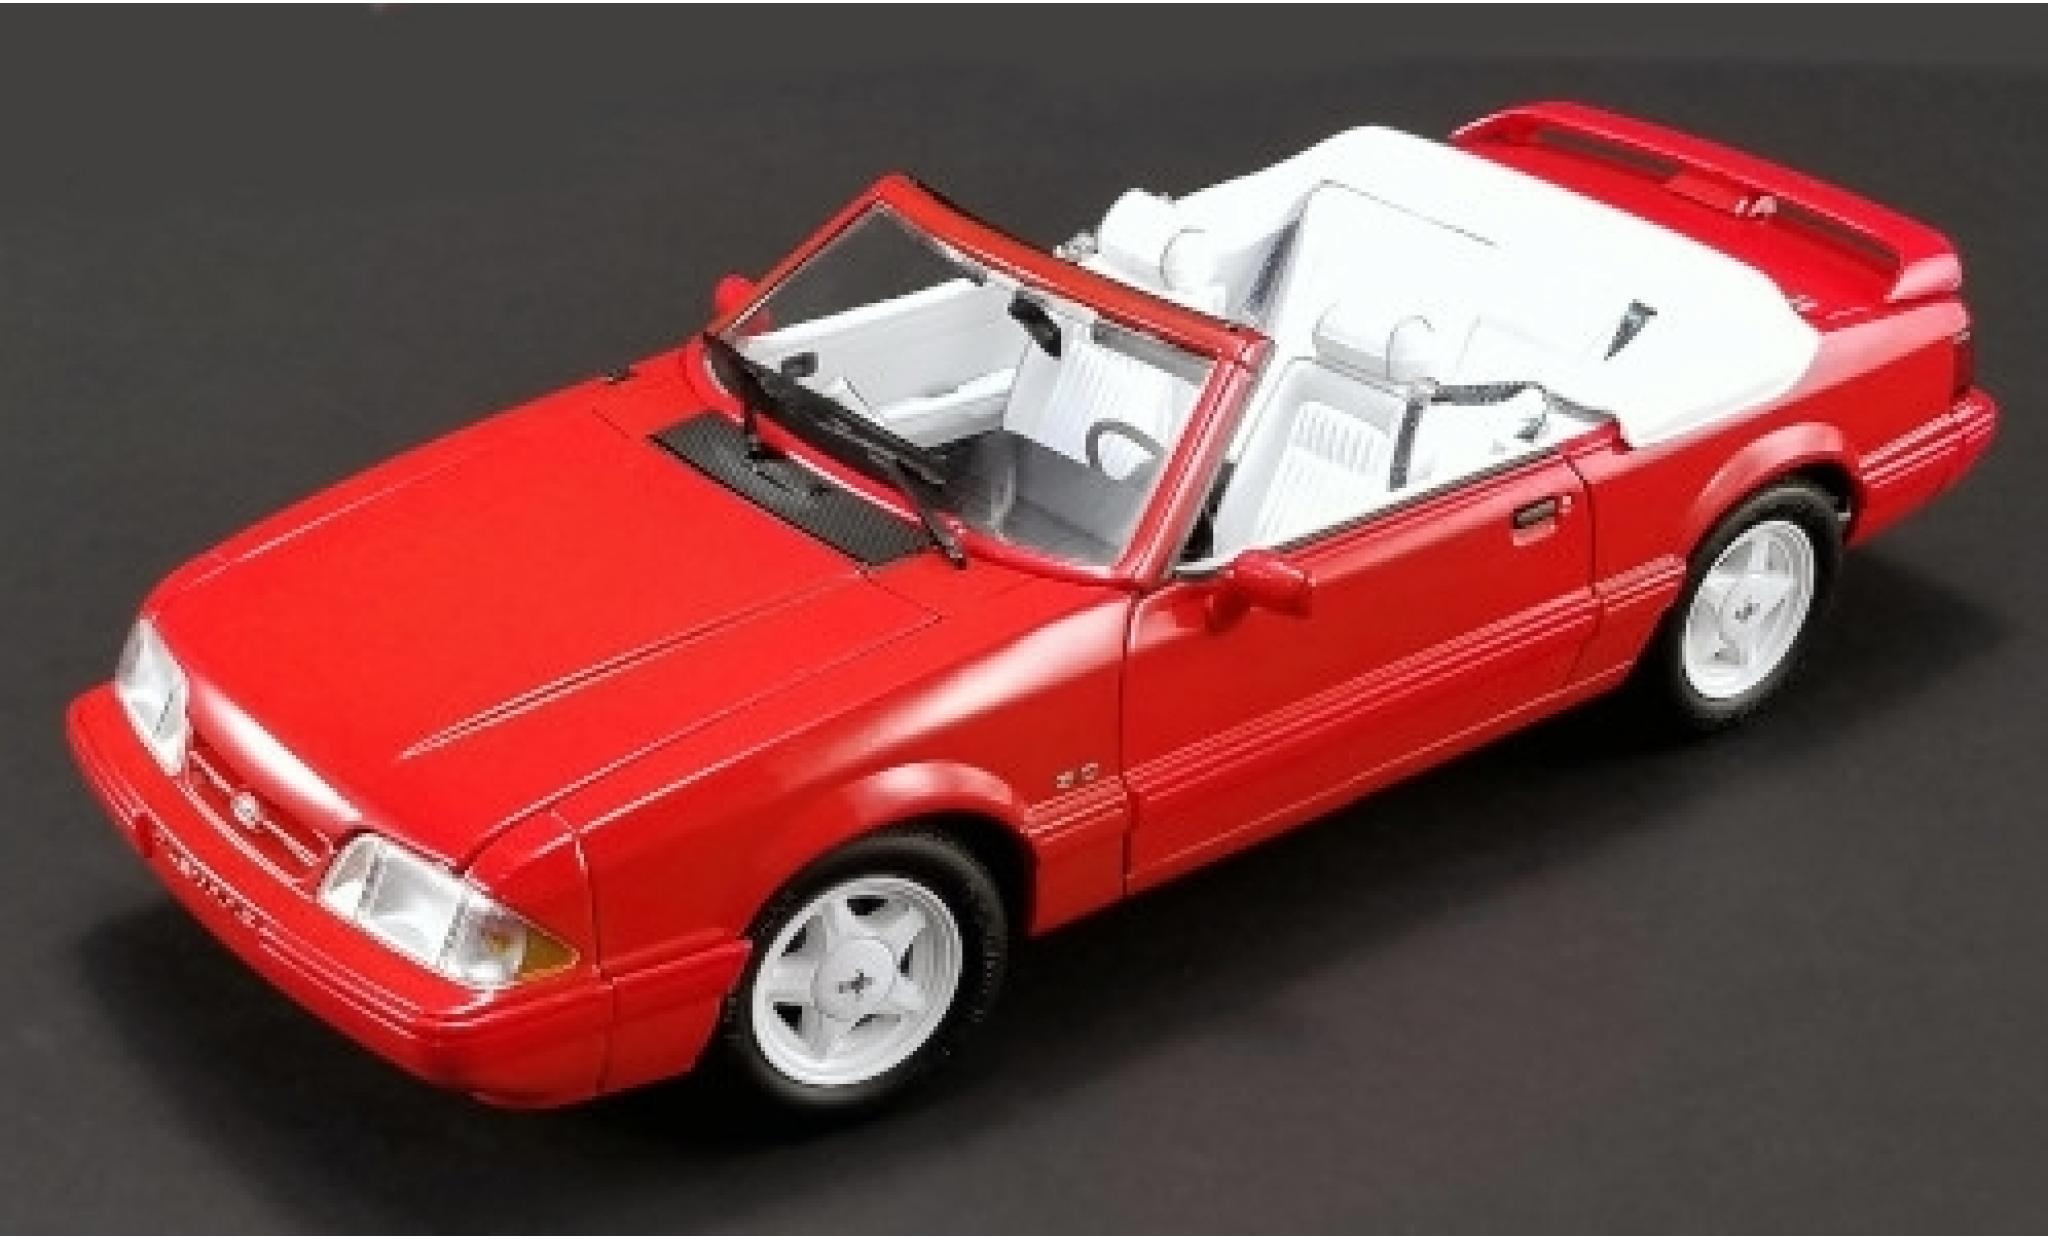 Ford Mustang 1/18 GMP LX 5.0L Convertible Feature Car rouge 1992 Softtop liegt bei